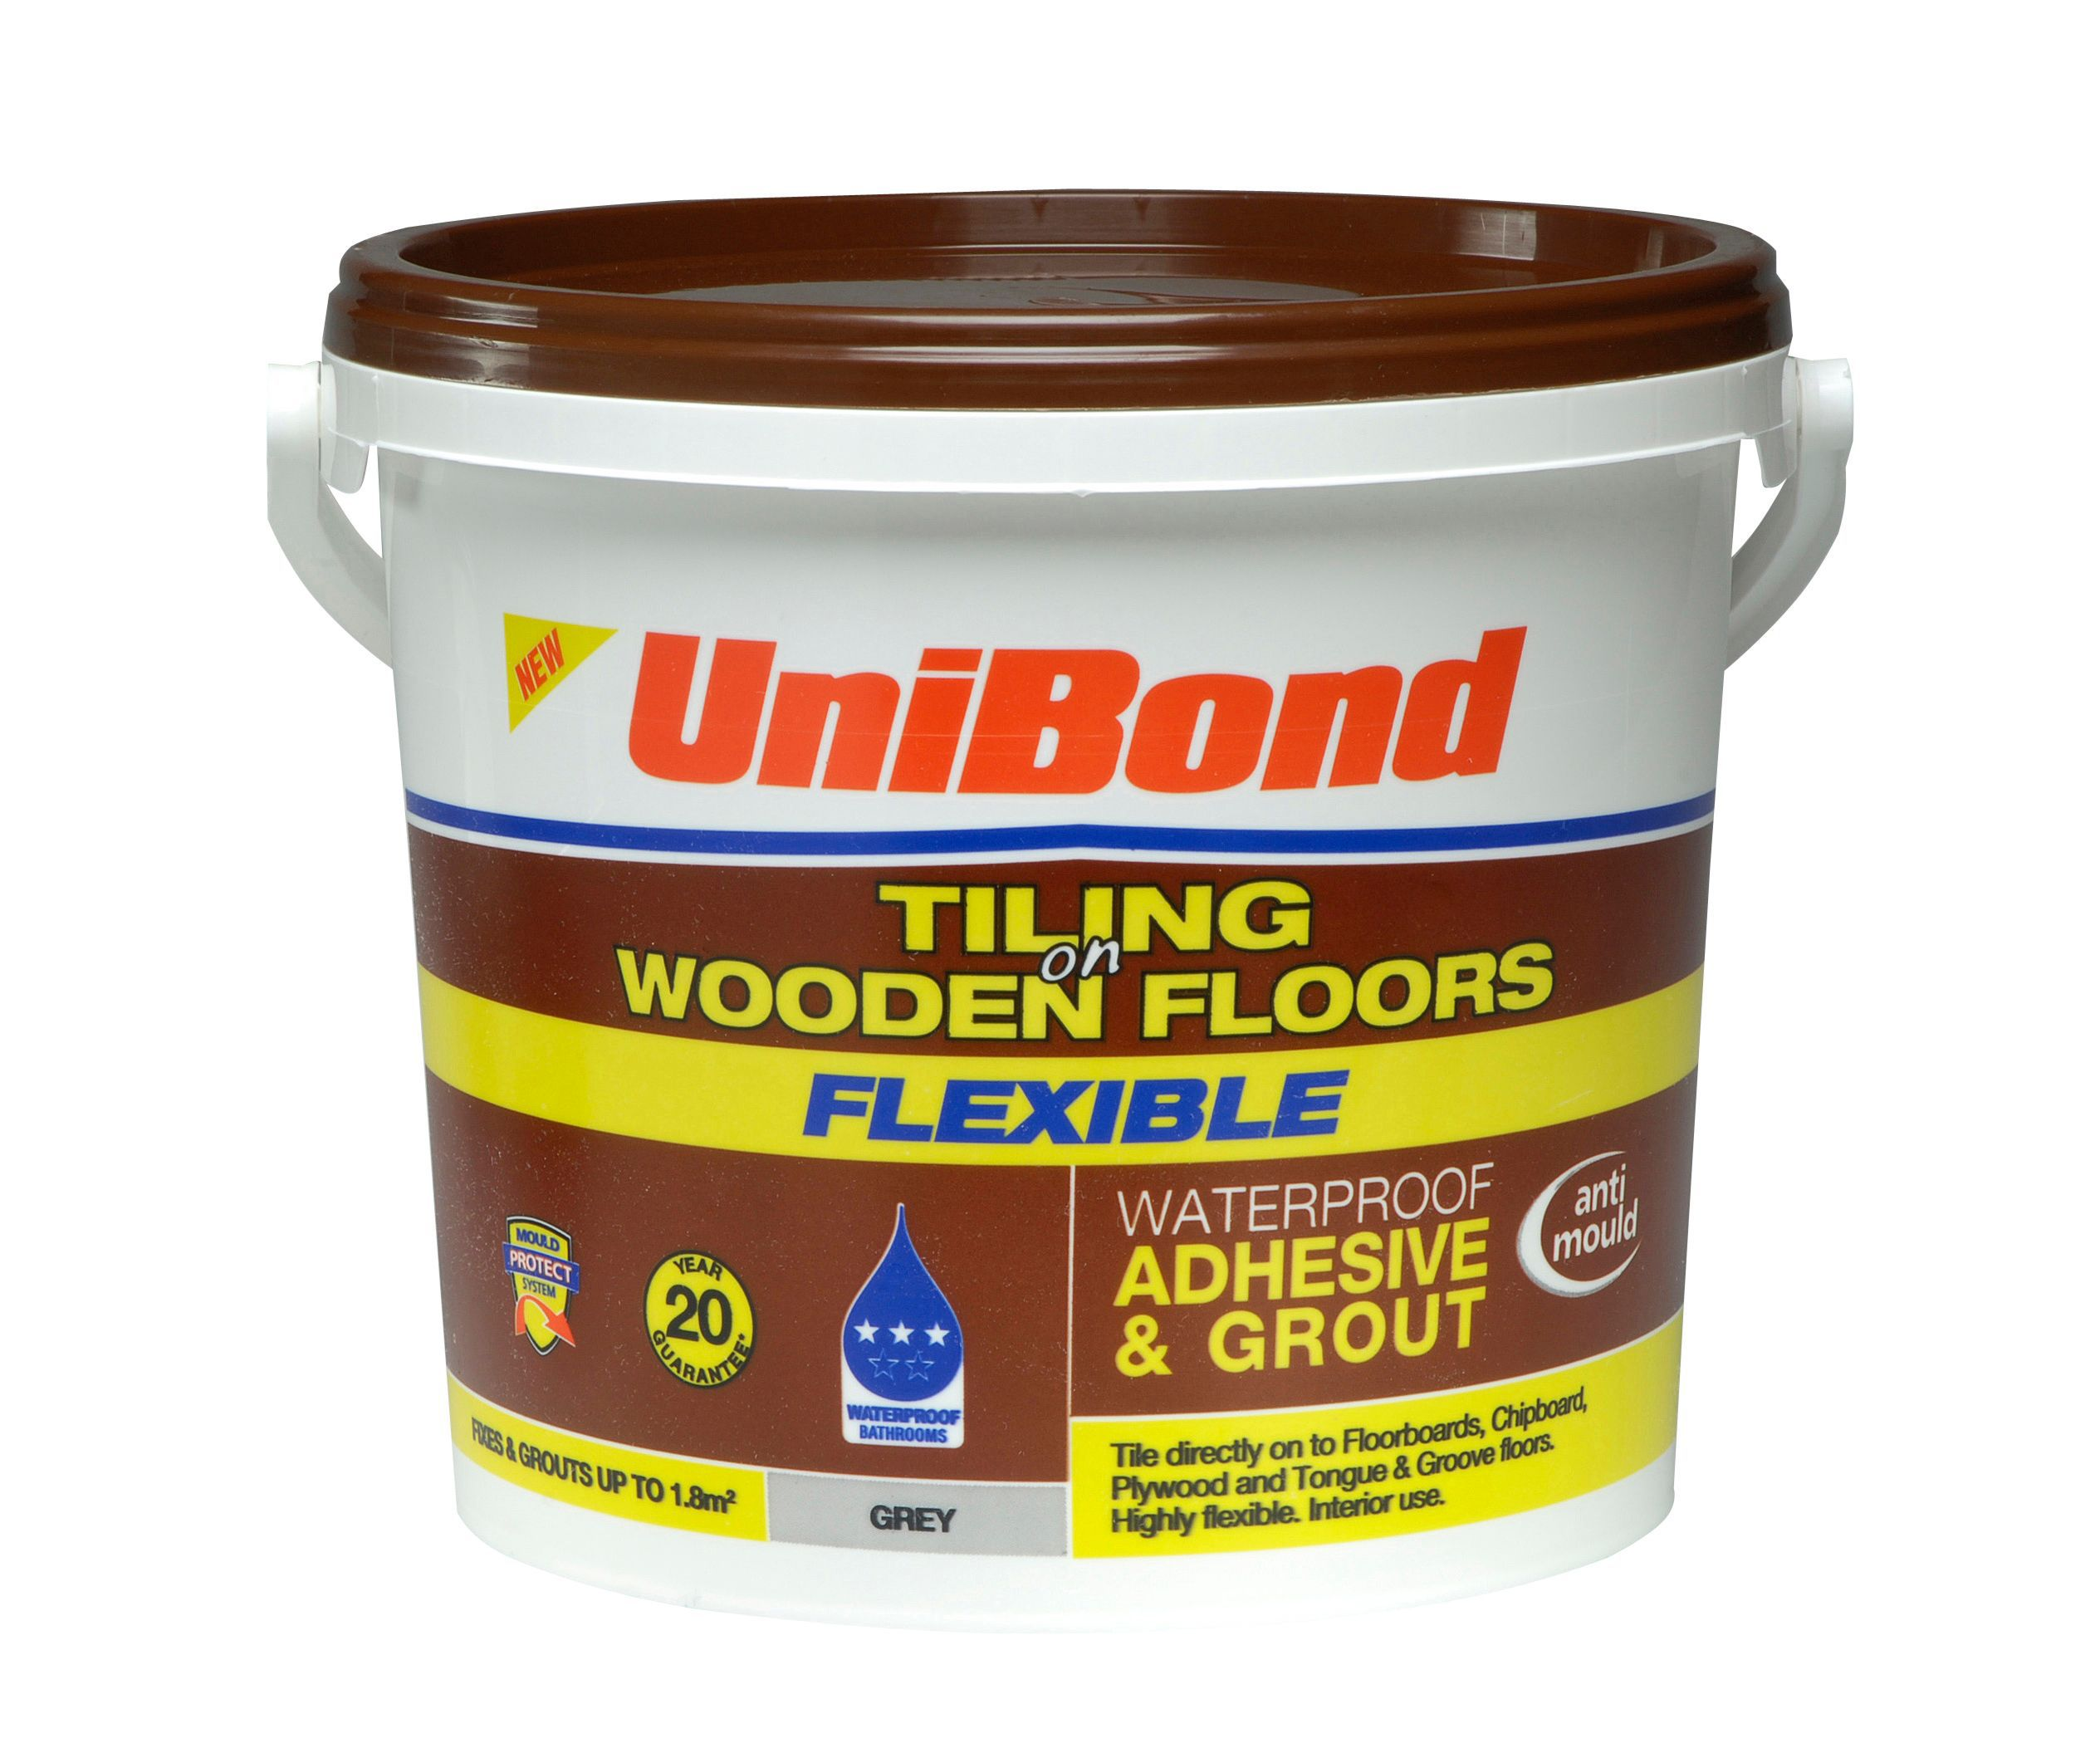 Unibond ready to use floor tile adhesive grout grey 73kg unibond ready to use floor tile adhesive grout grey 73kg departments diy at bq dailygadgetfo Gallery